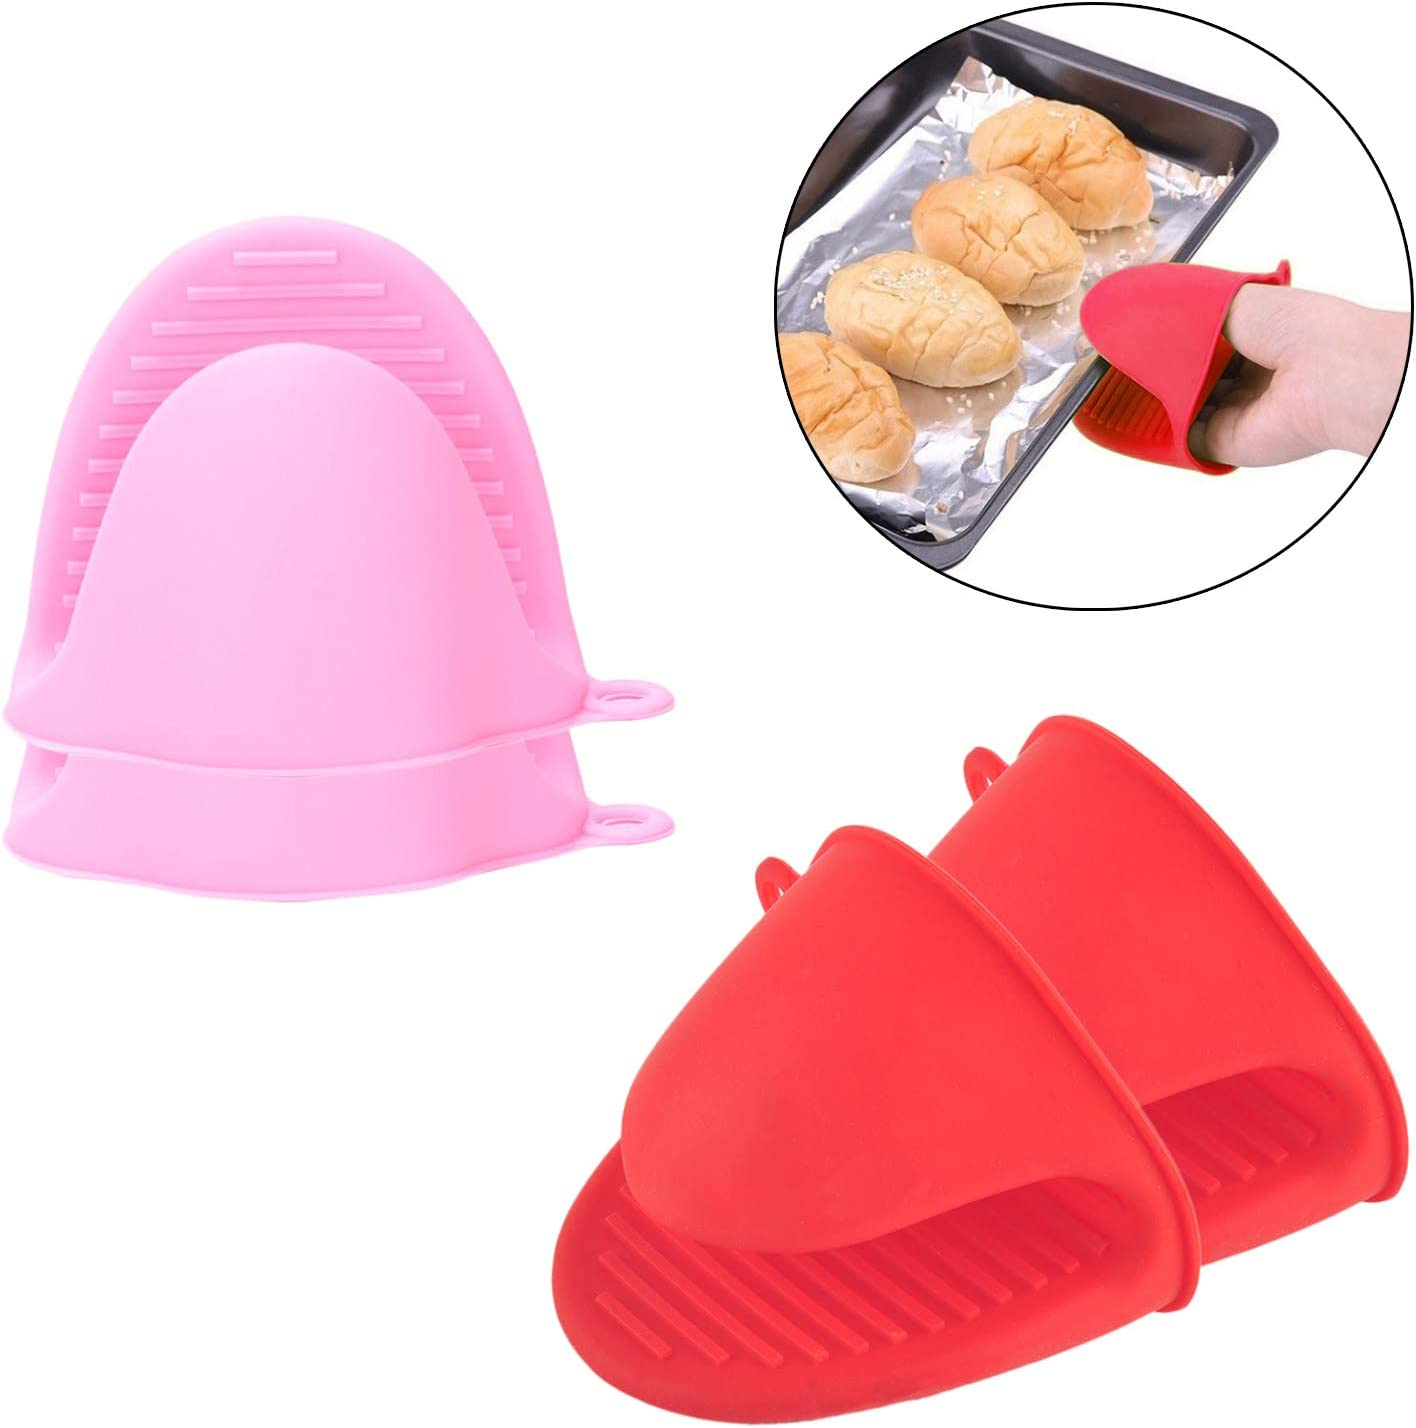 SUNTRADE 2 Pairs Mini Silicone Oven Gloves,Heat Resistant Cooking Pinch Mitts Potholder for Kitchen Cooking & Baking (Pink+Red)